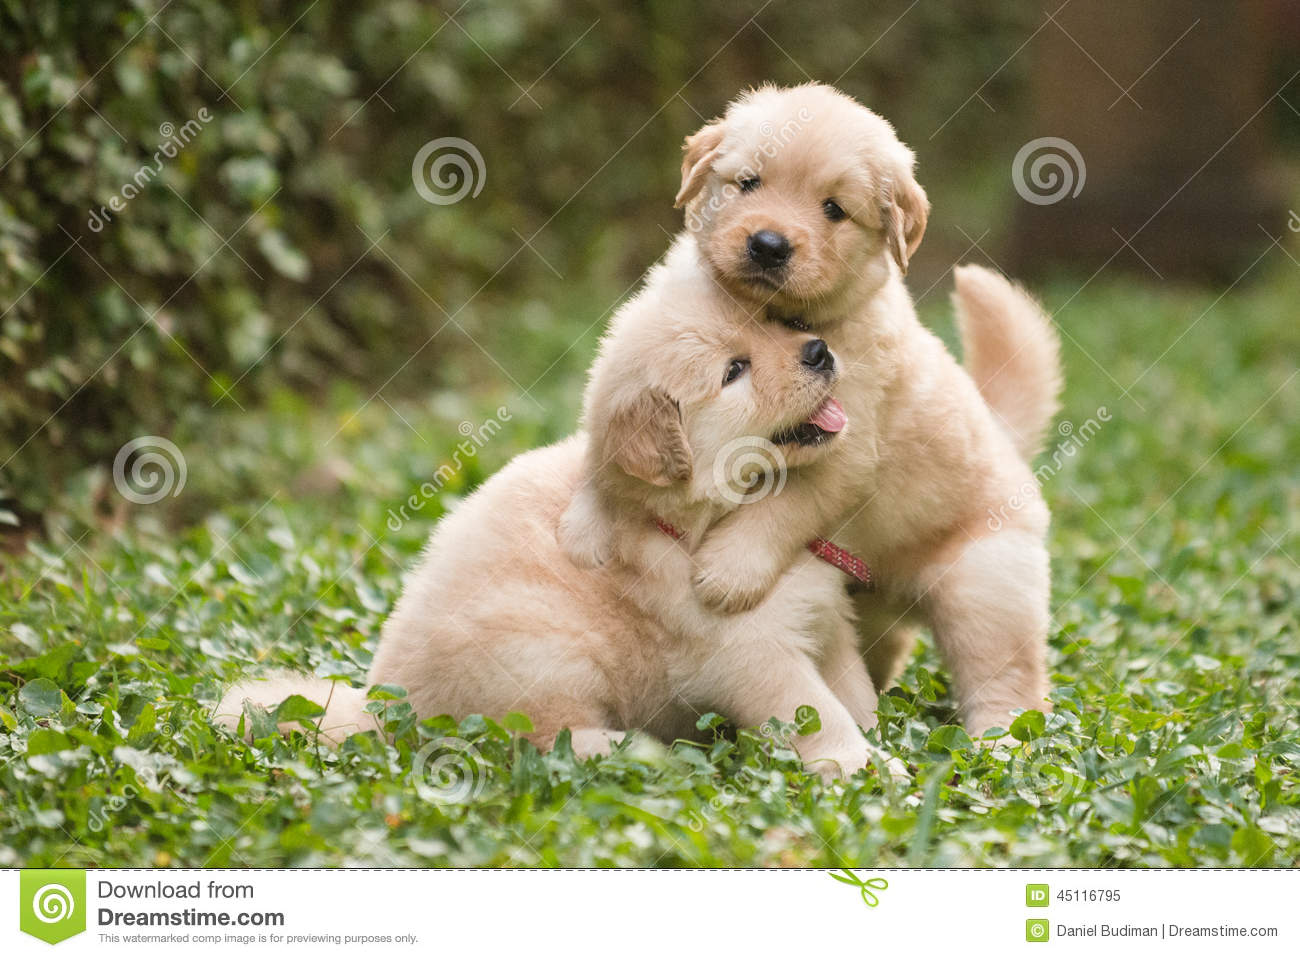 Cute Puppies Golden Retriever Playing